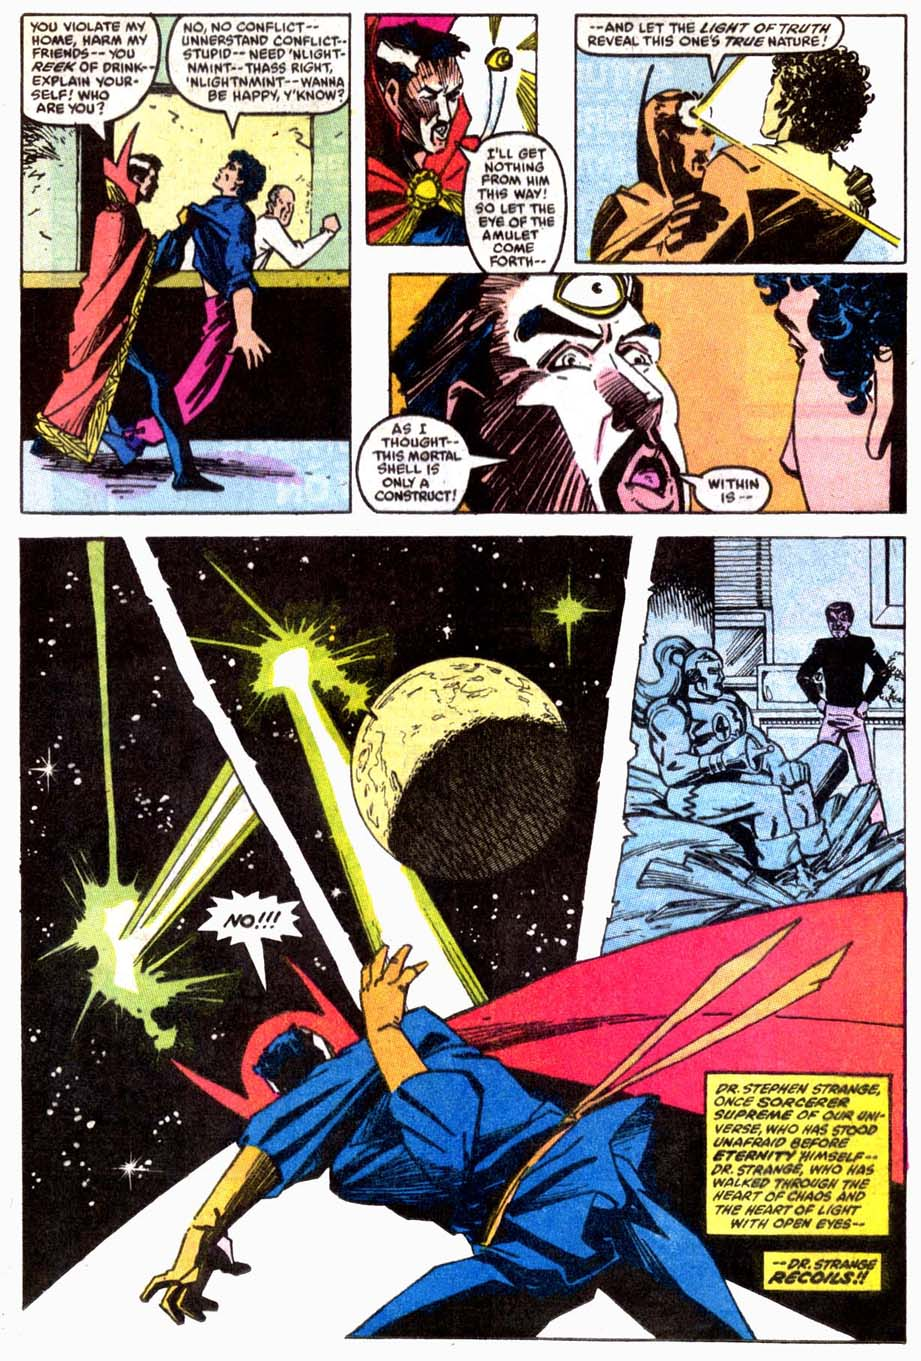 Doctor Strange (Classic) Fears Pre-Retcon Beyonder Rco01410